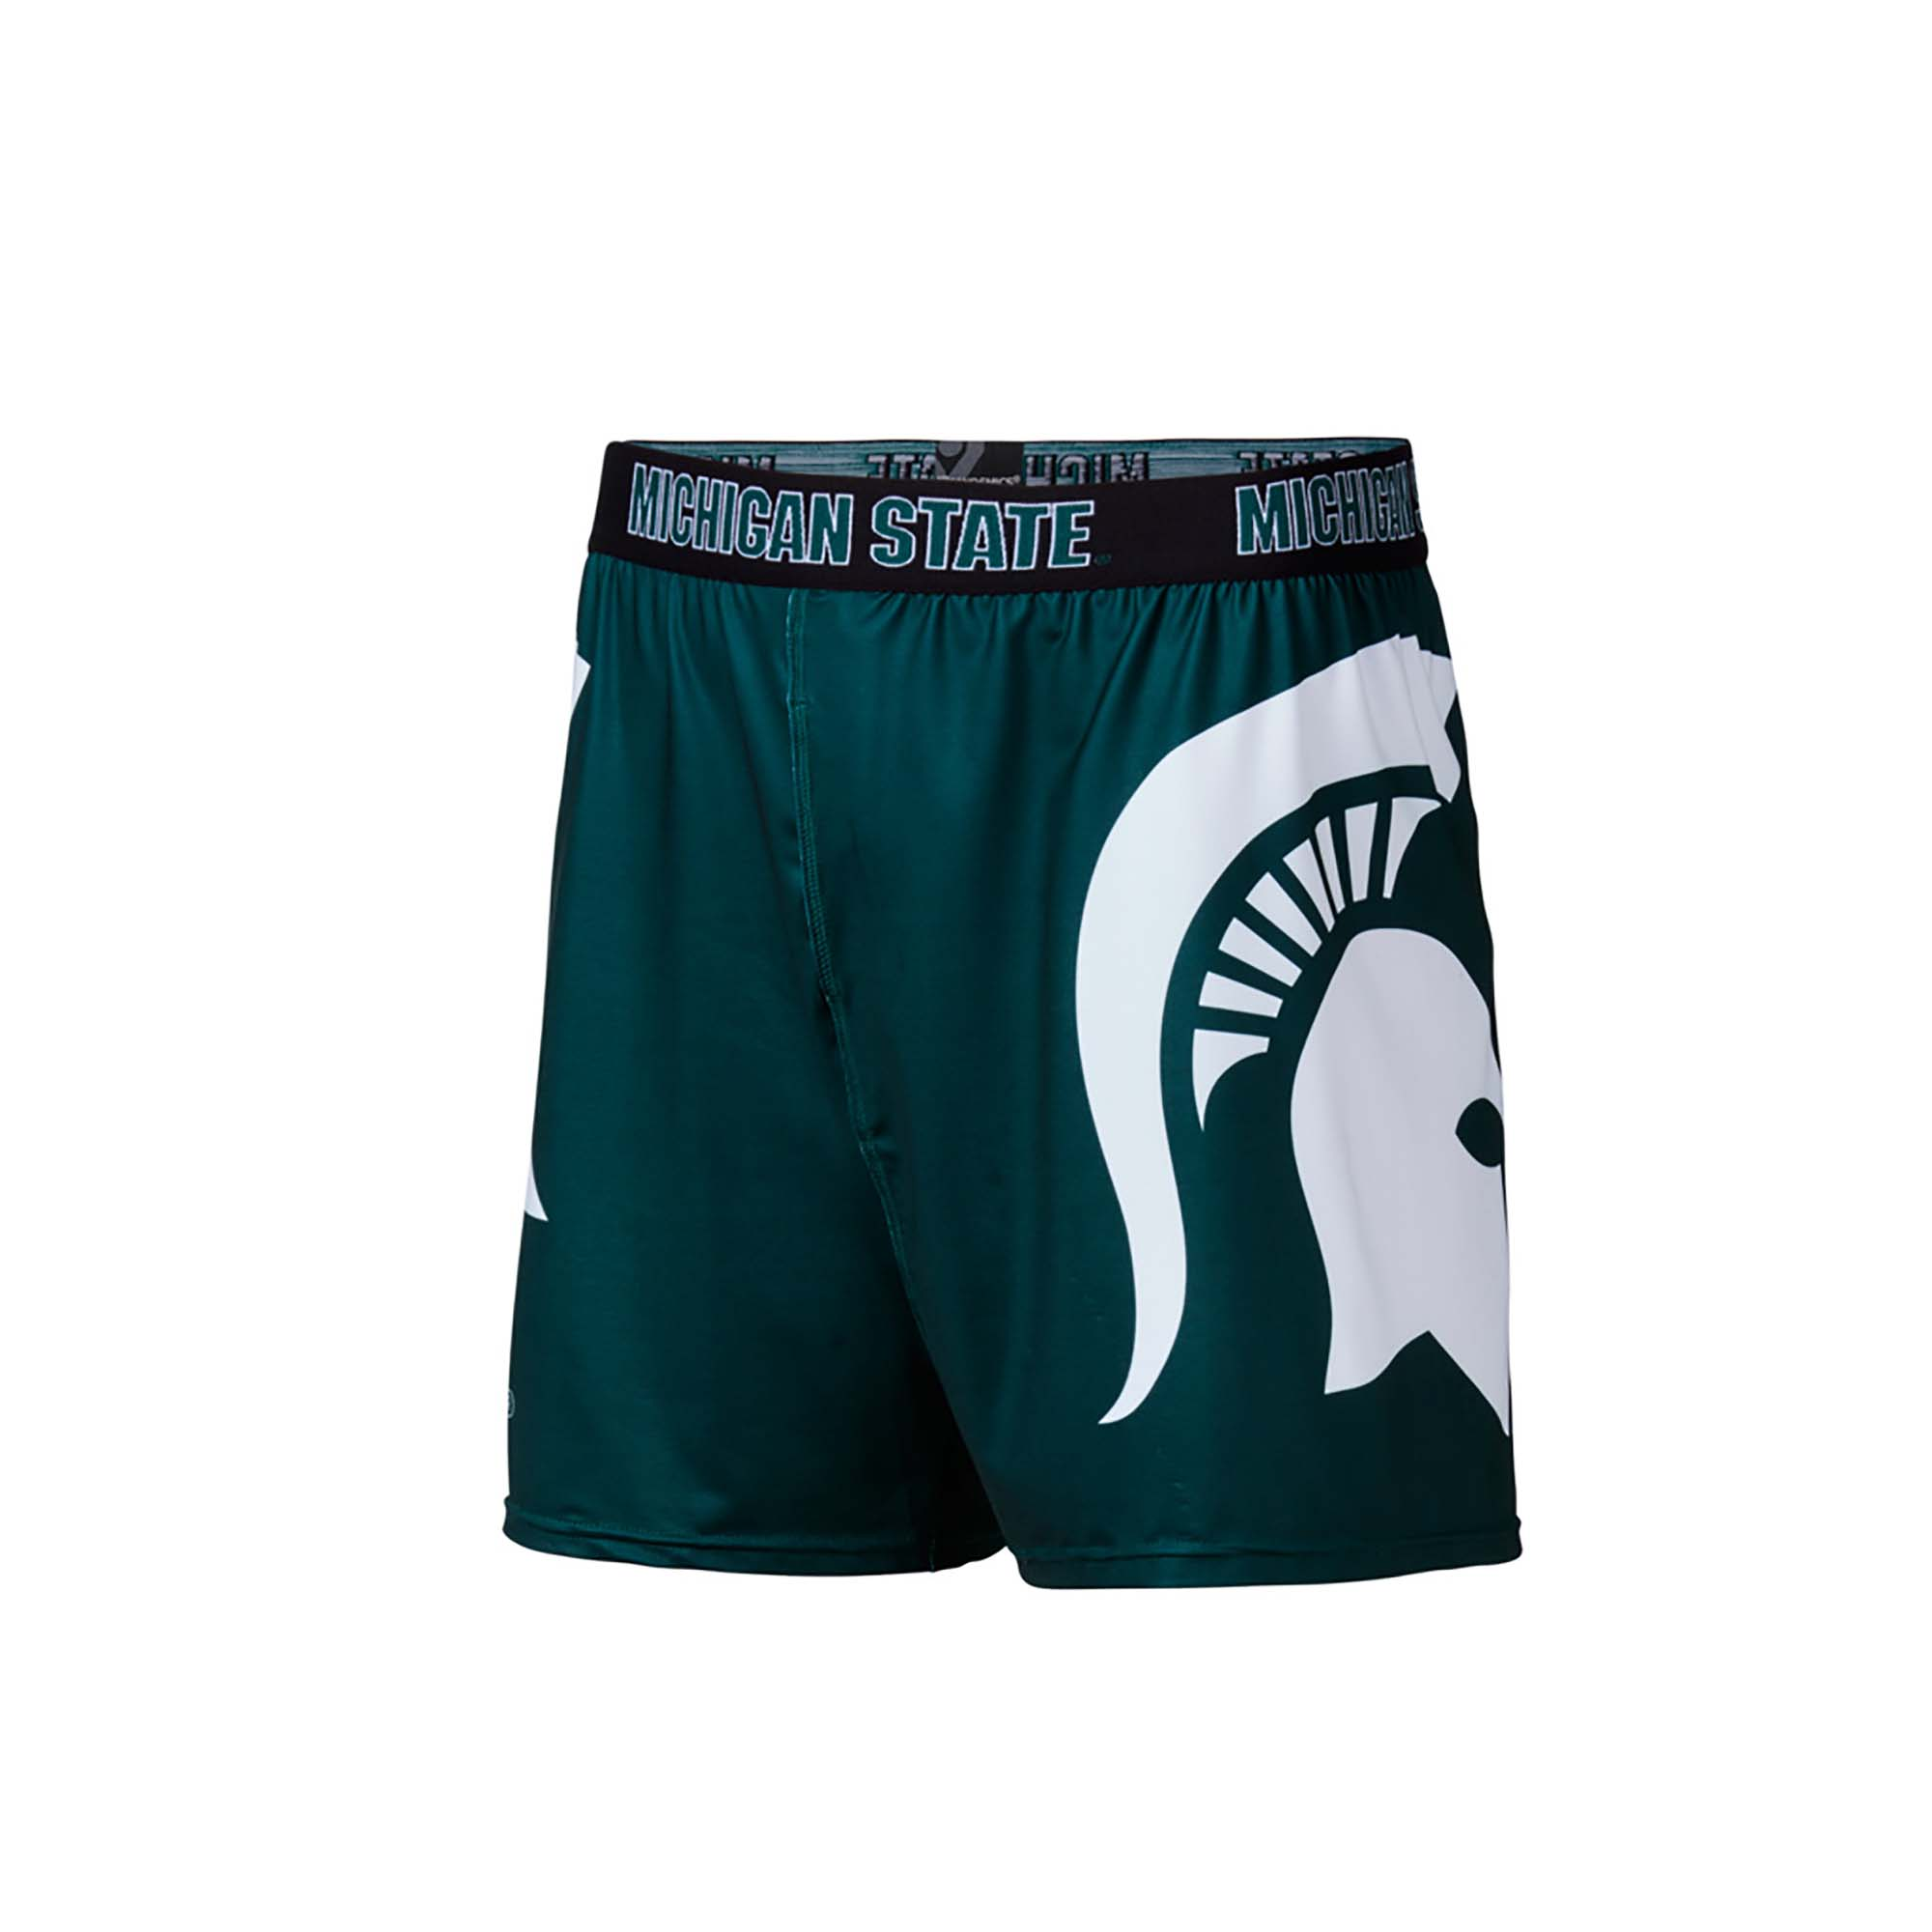 MSU Michigan State Spartans Men's Premium Underwear by Fandemics